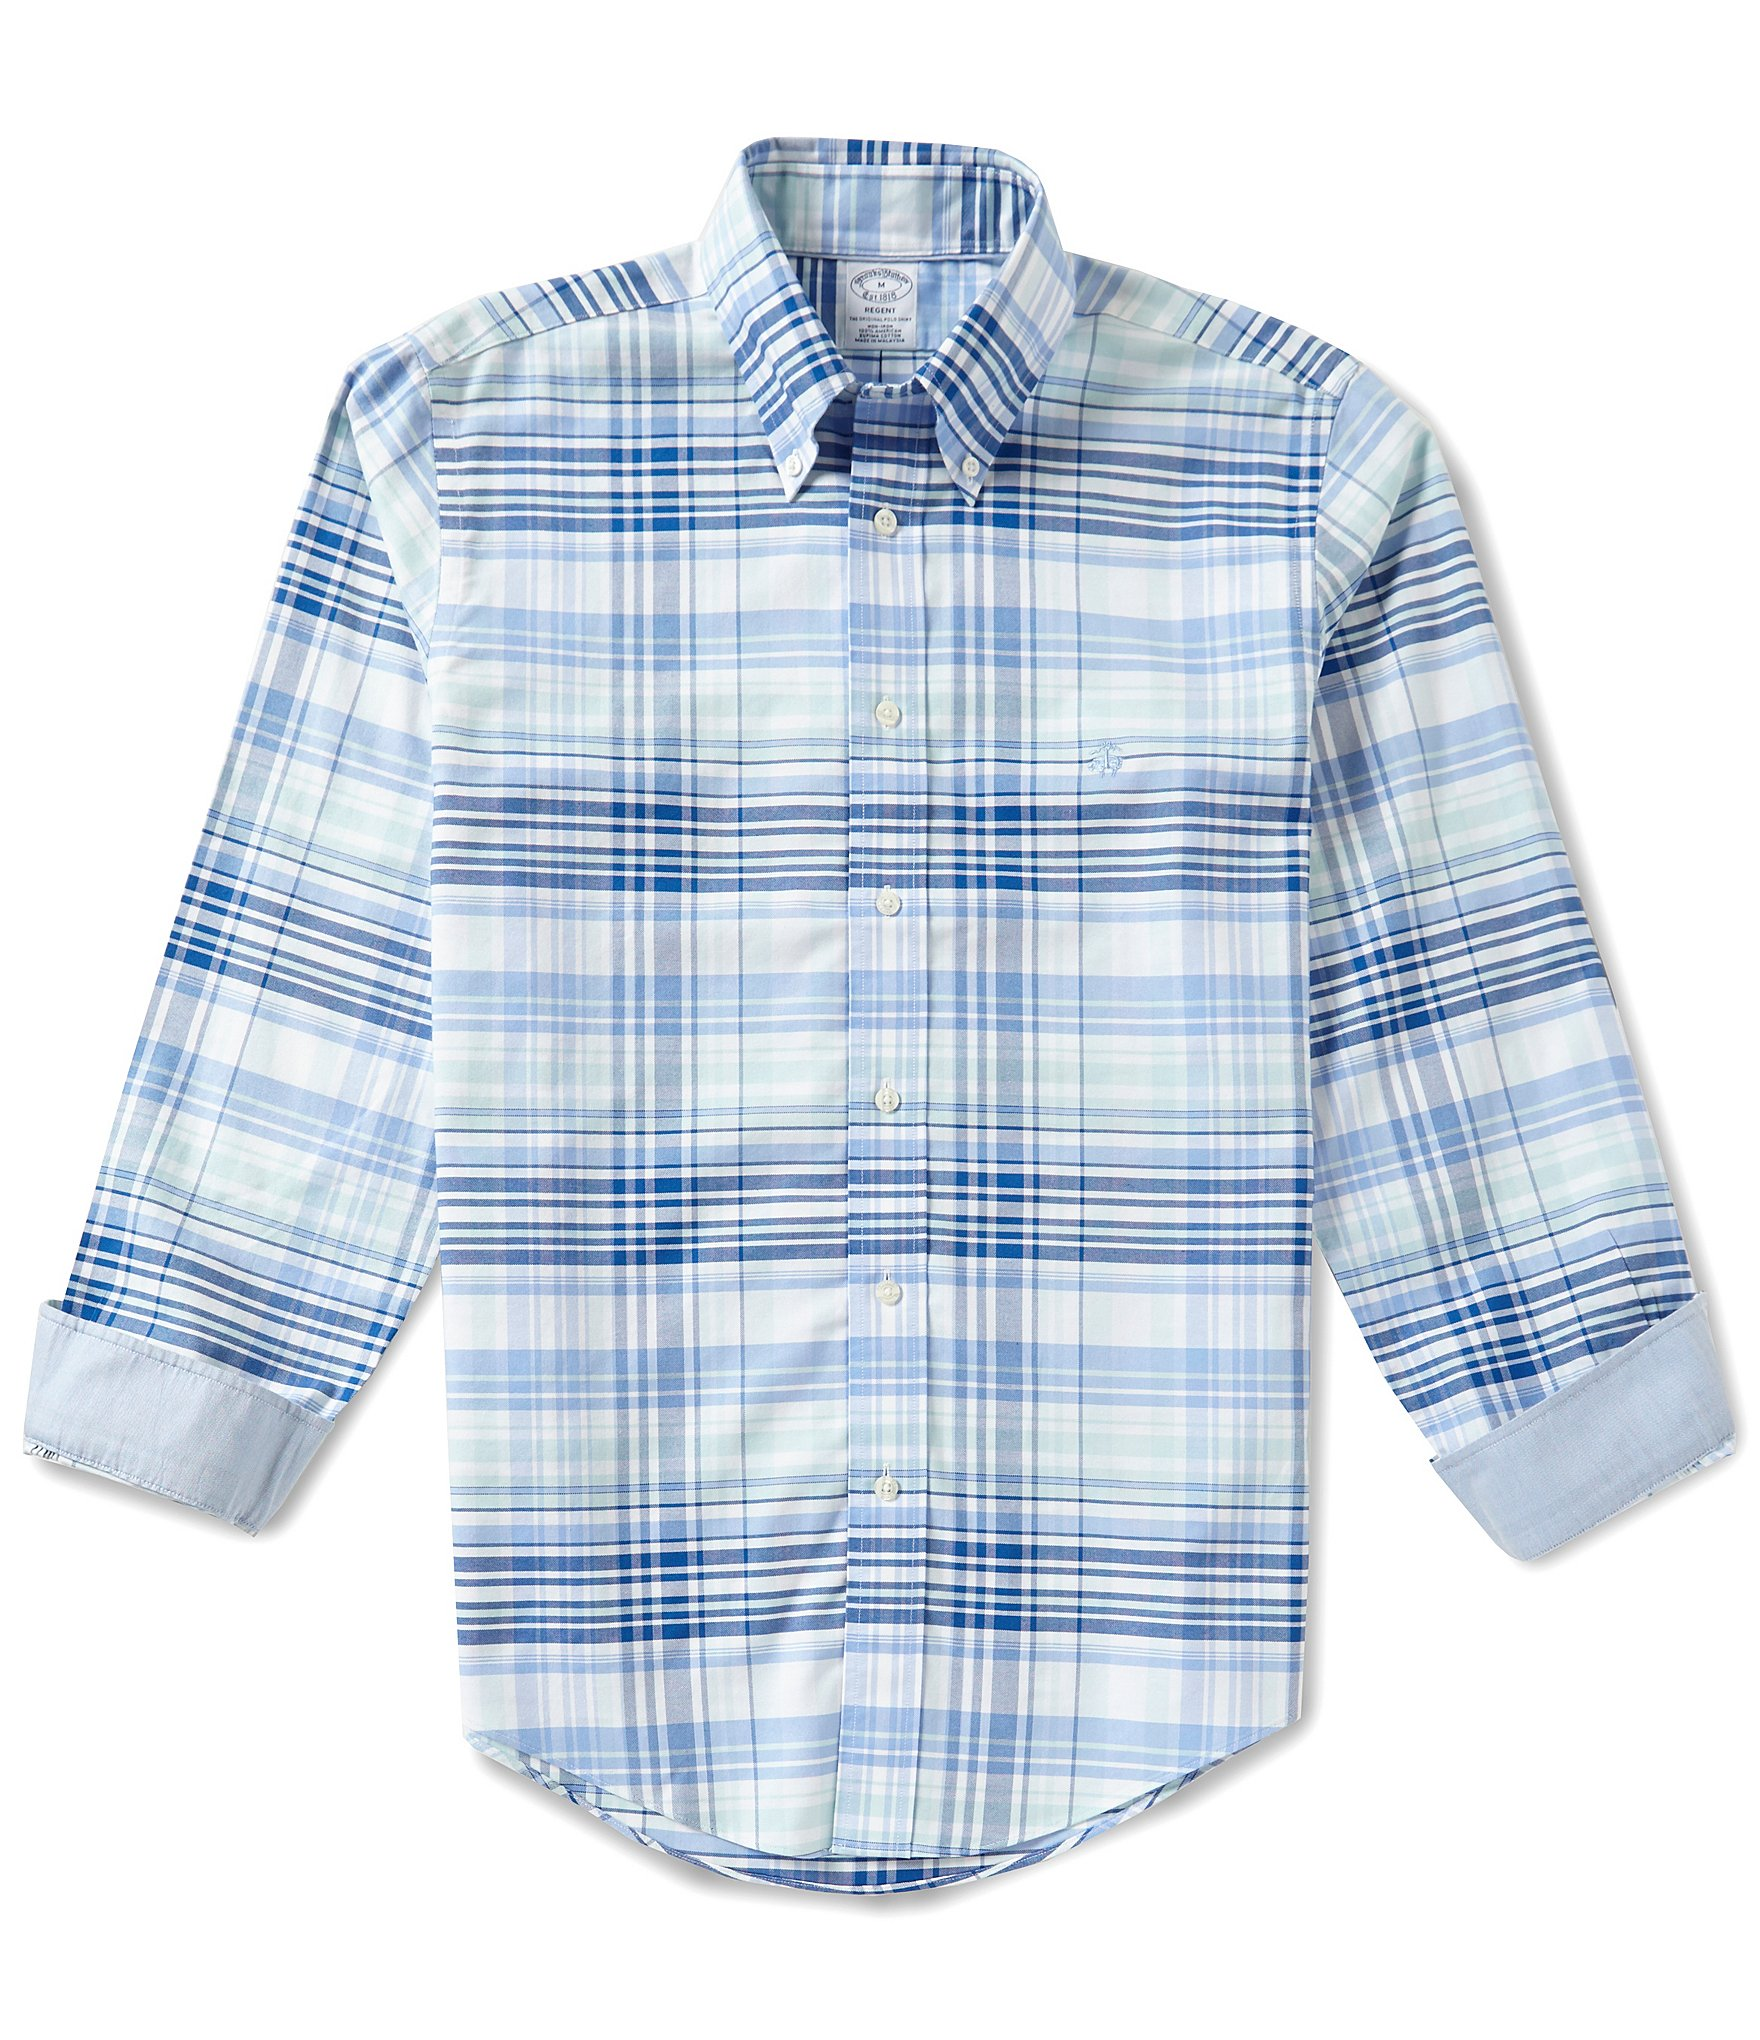 Brooks brothers slim fit oxford plaid long sleeve woven Brooks brothers shirt size guide